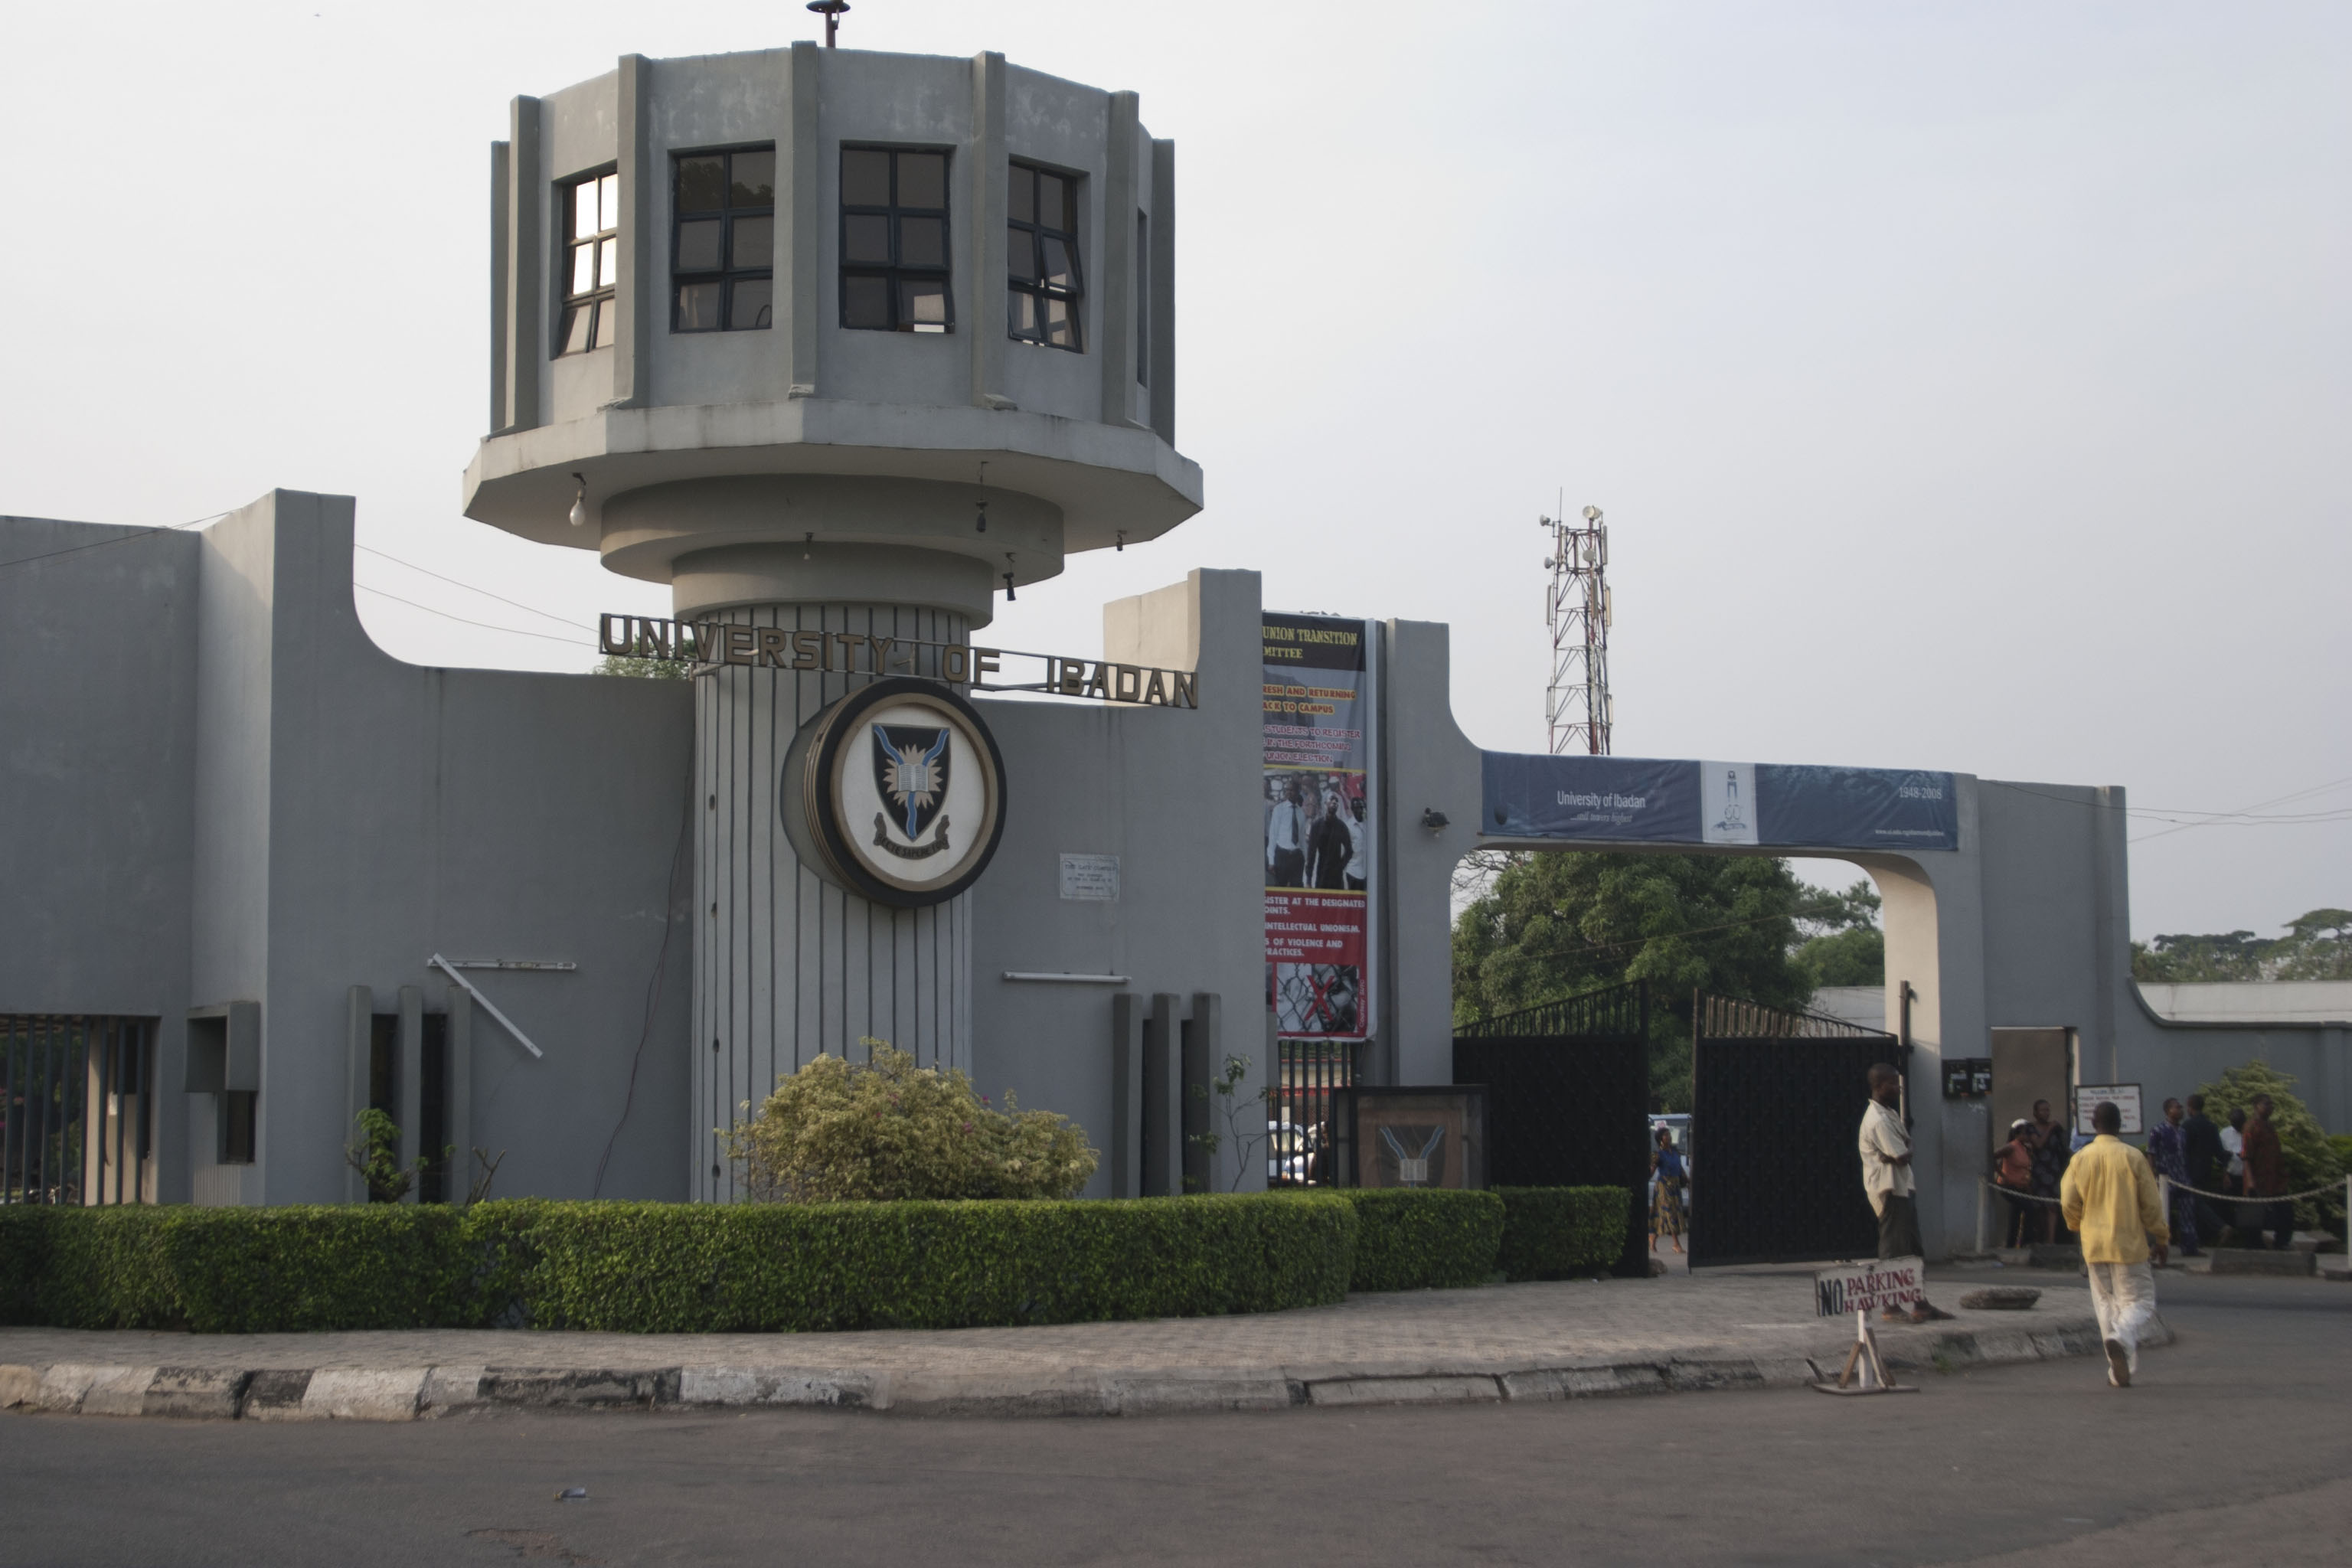 Group Threatens to Bomb University of Ibadan Before Independence Day